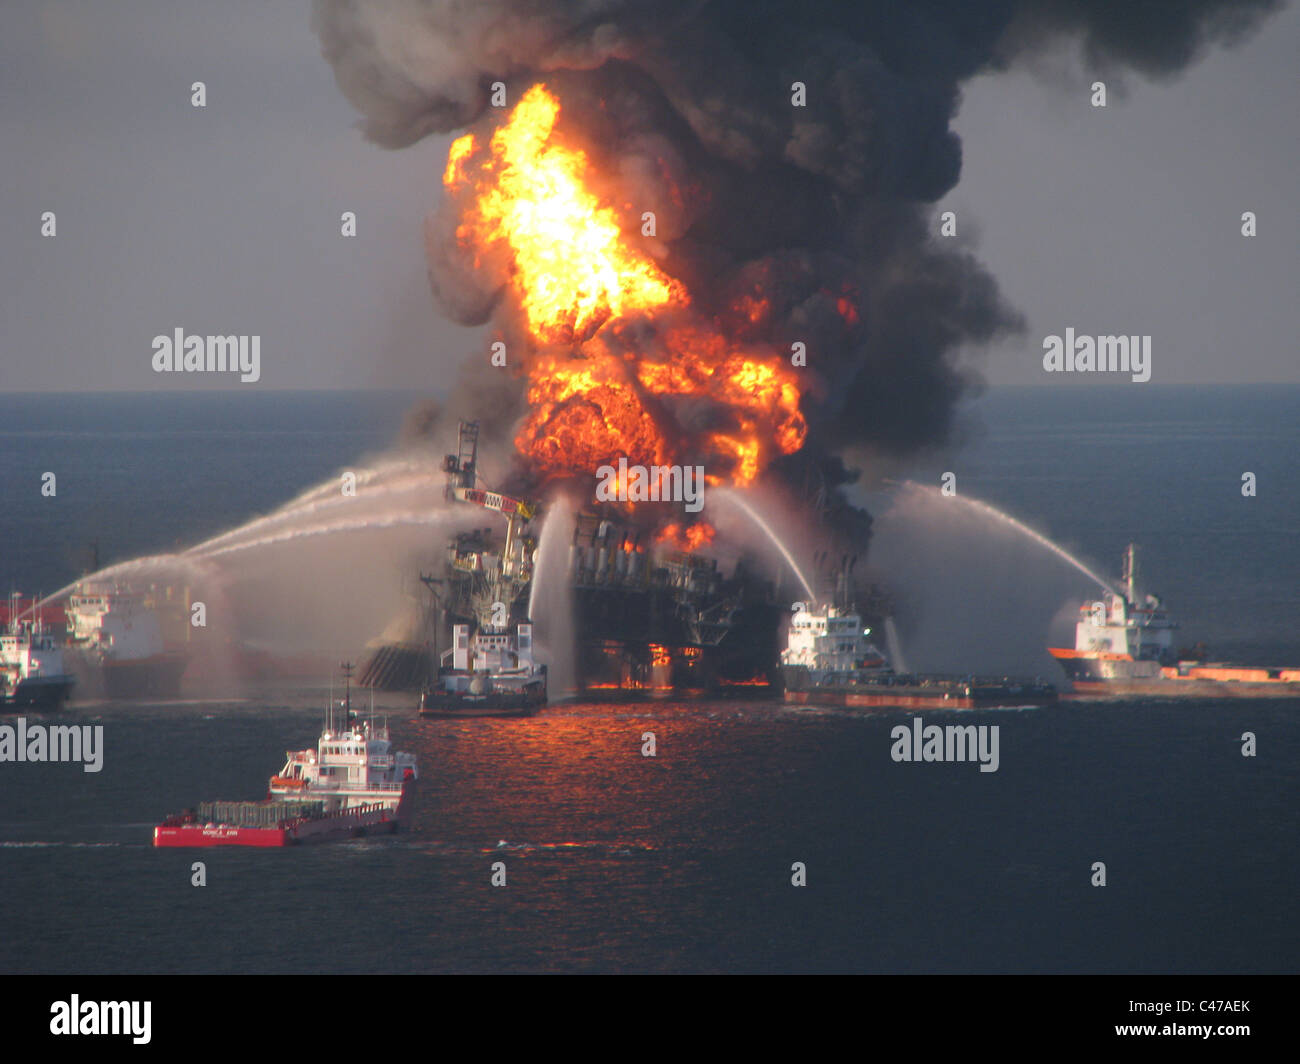 Fire boats battle an explosion at the off shore oil rig Deepwater Horizon - Stock Image